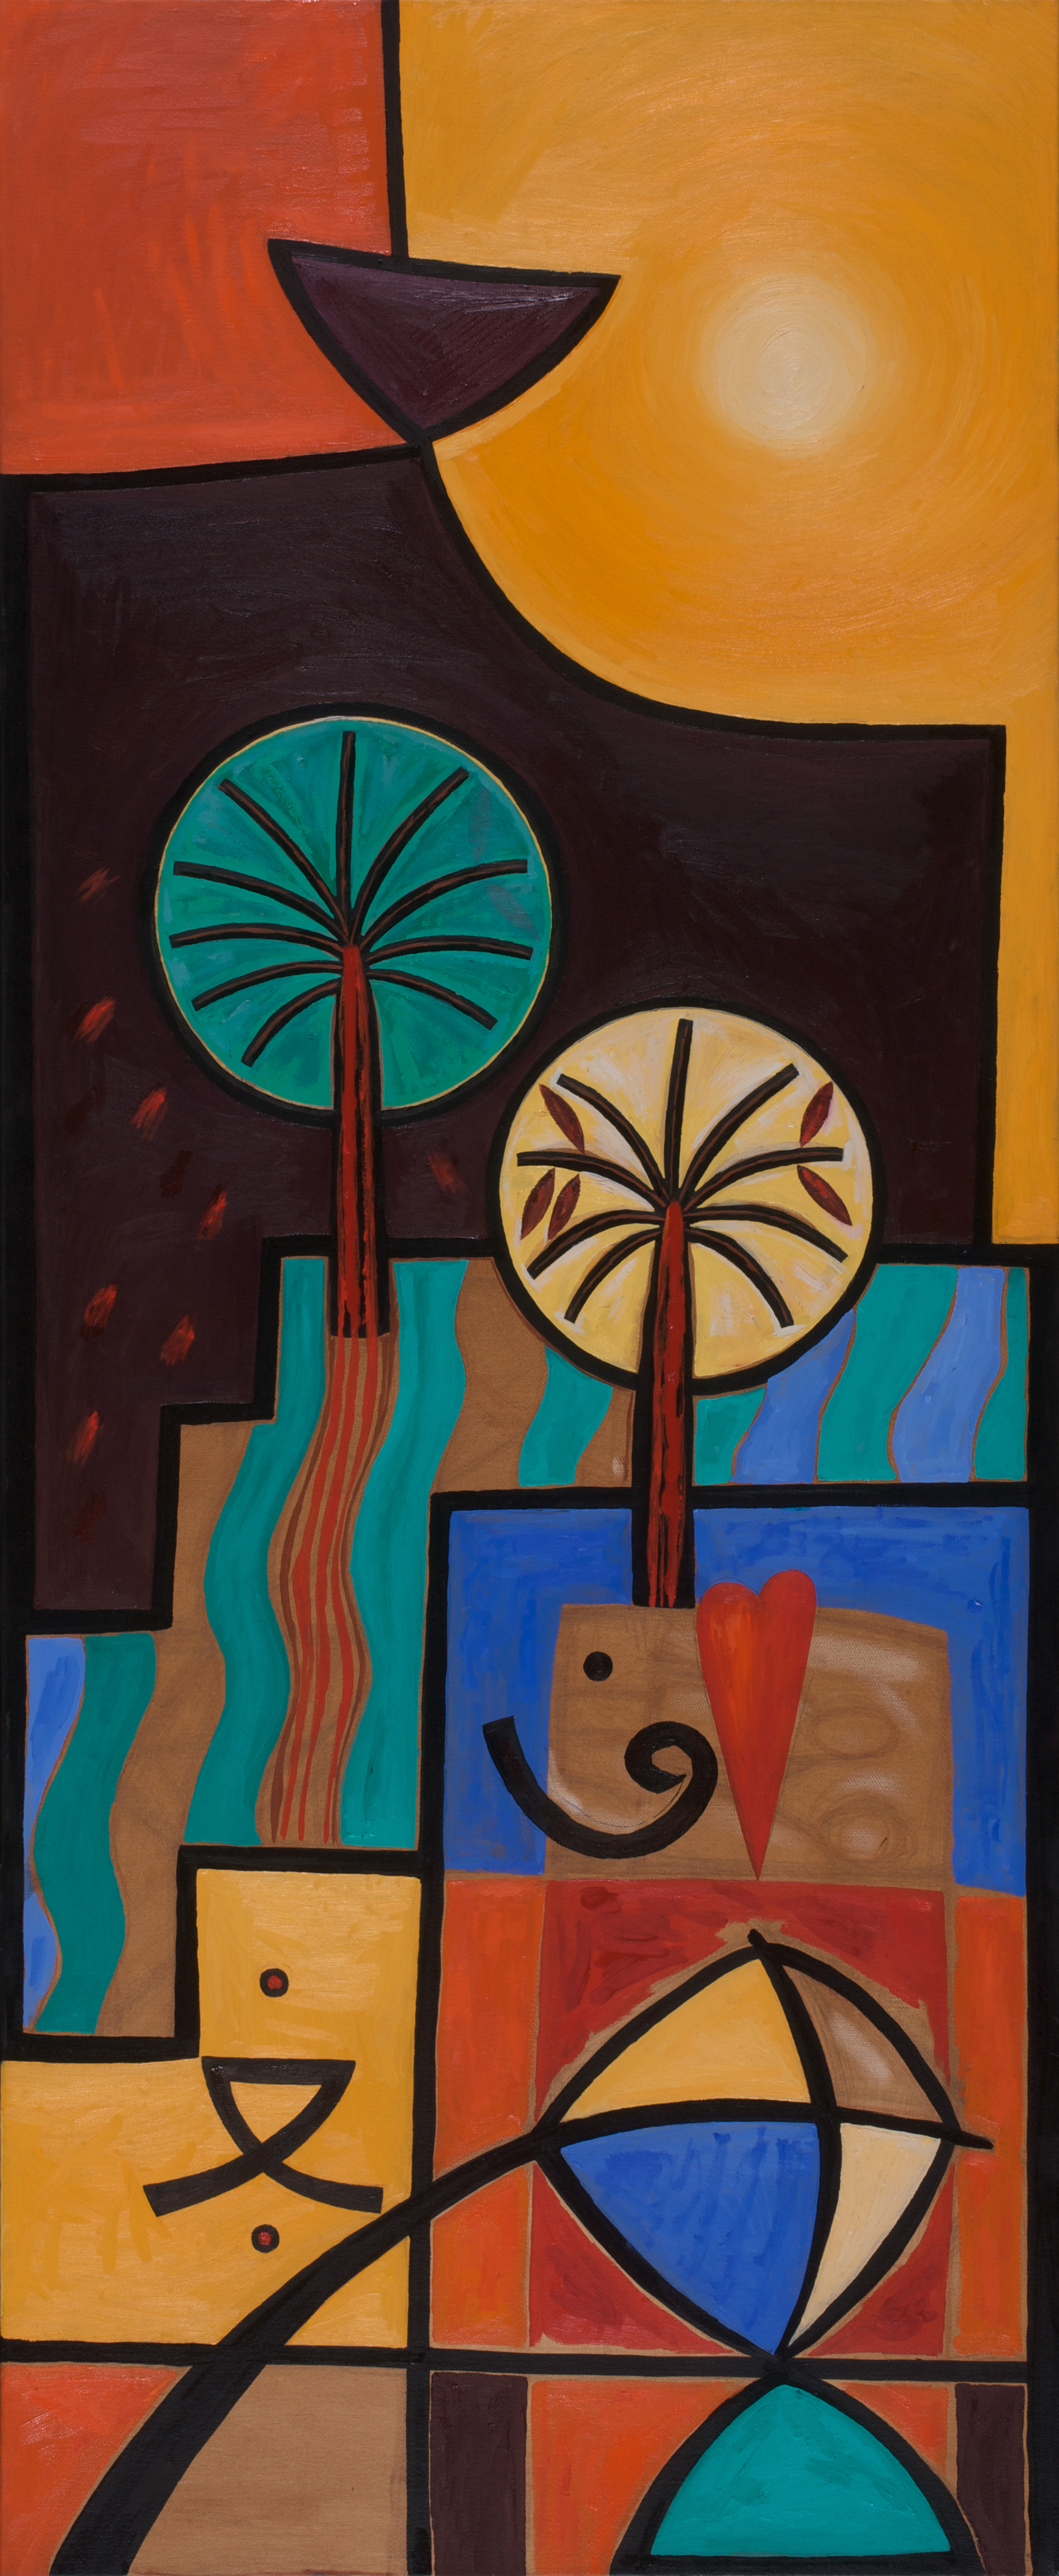 Sabha  Kites and Shattered Dreams  Oil on canvas 150x60cm 2008  Barjeel Collection  UAE